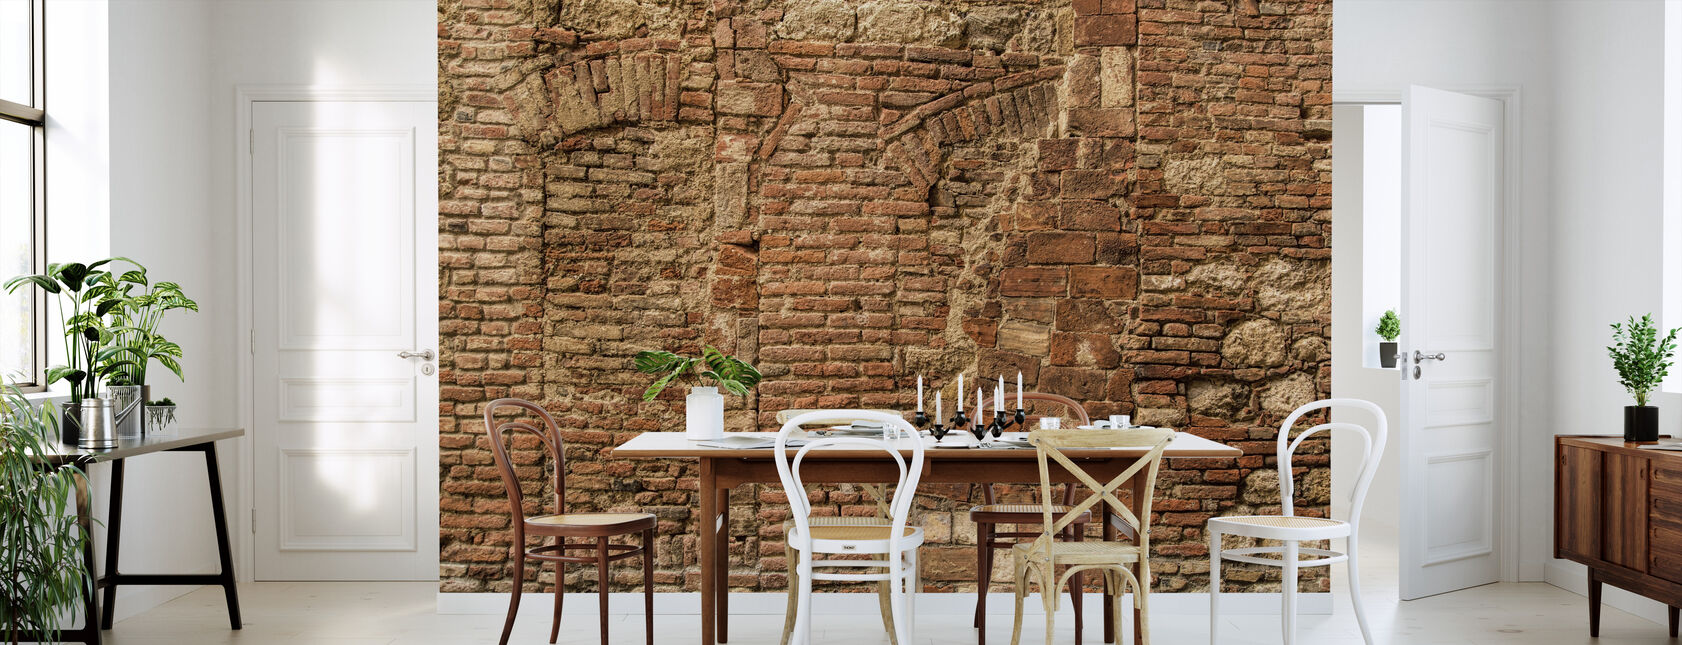 Italian Stone Wall - Wallpaper - Kitchen